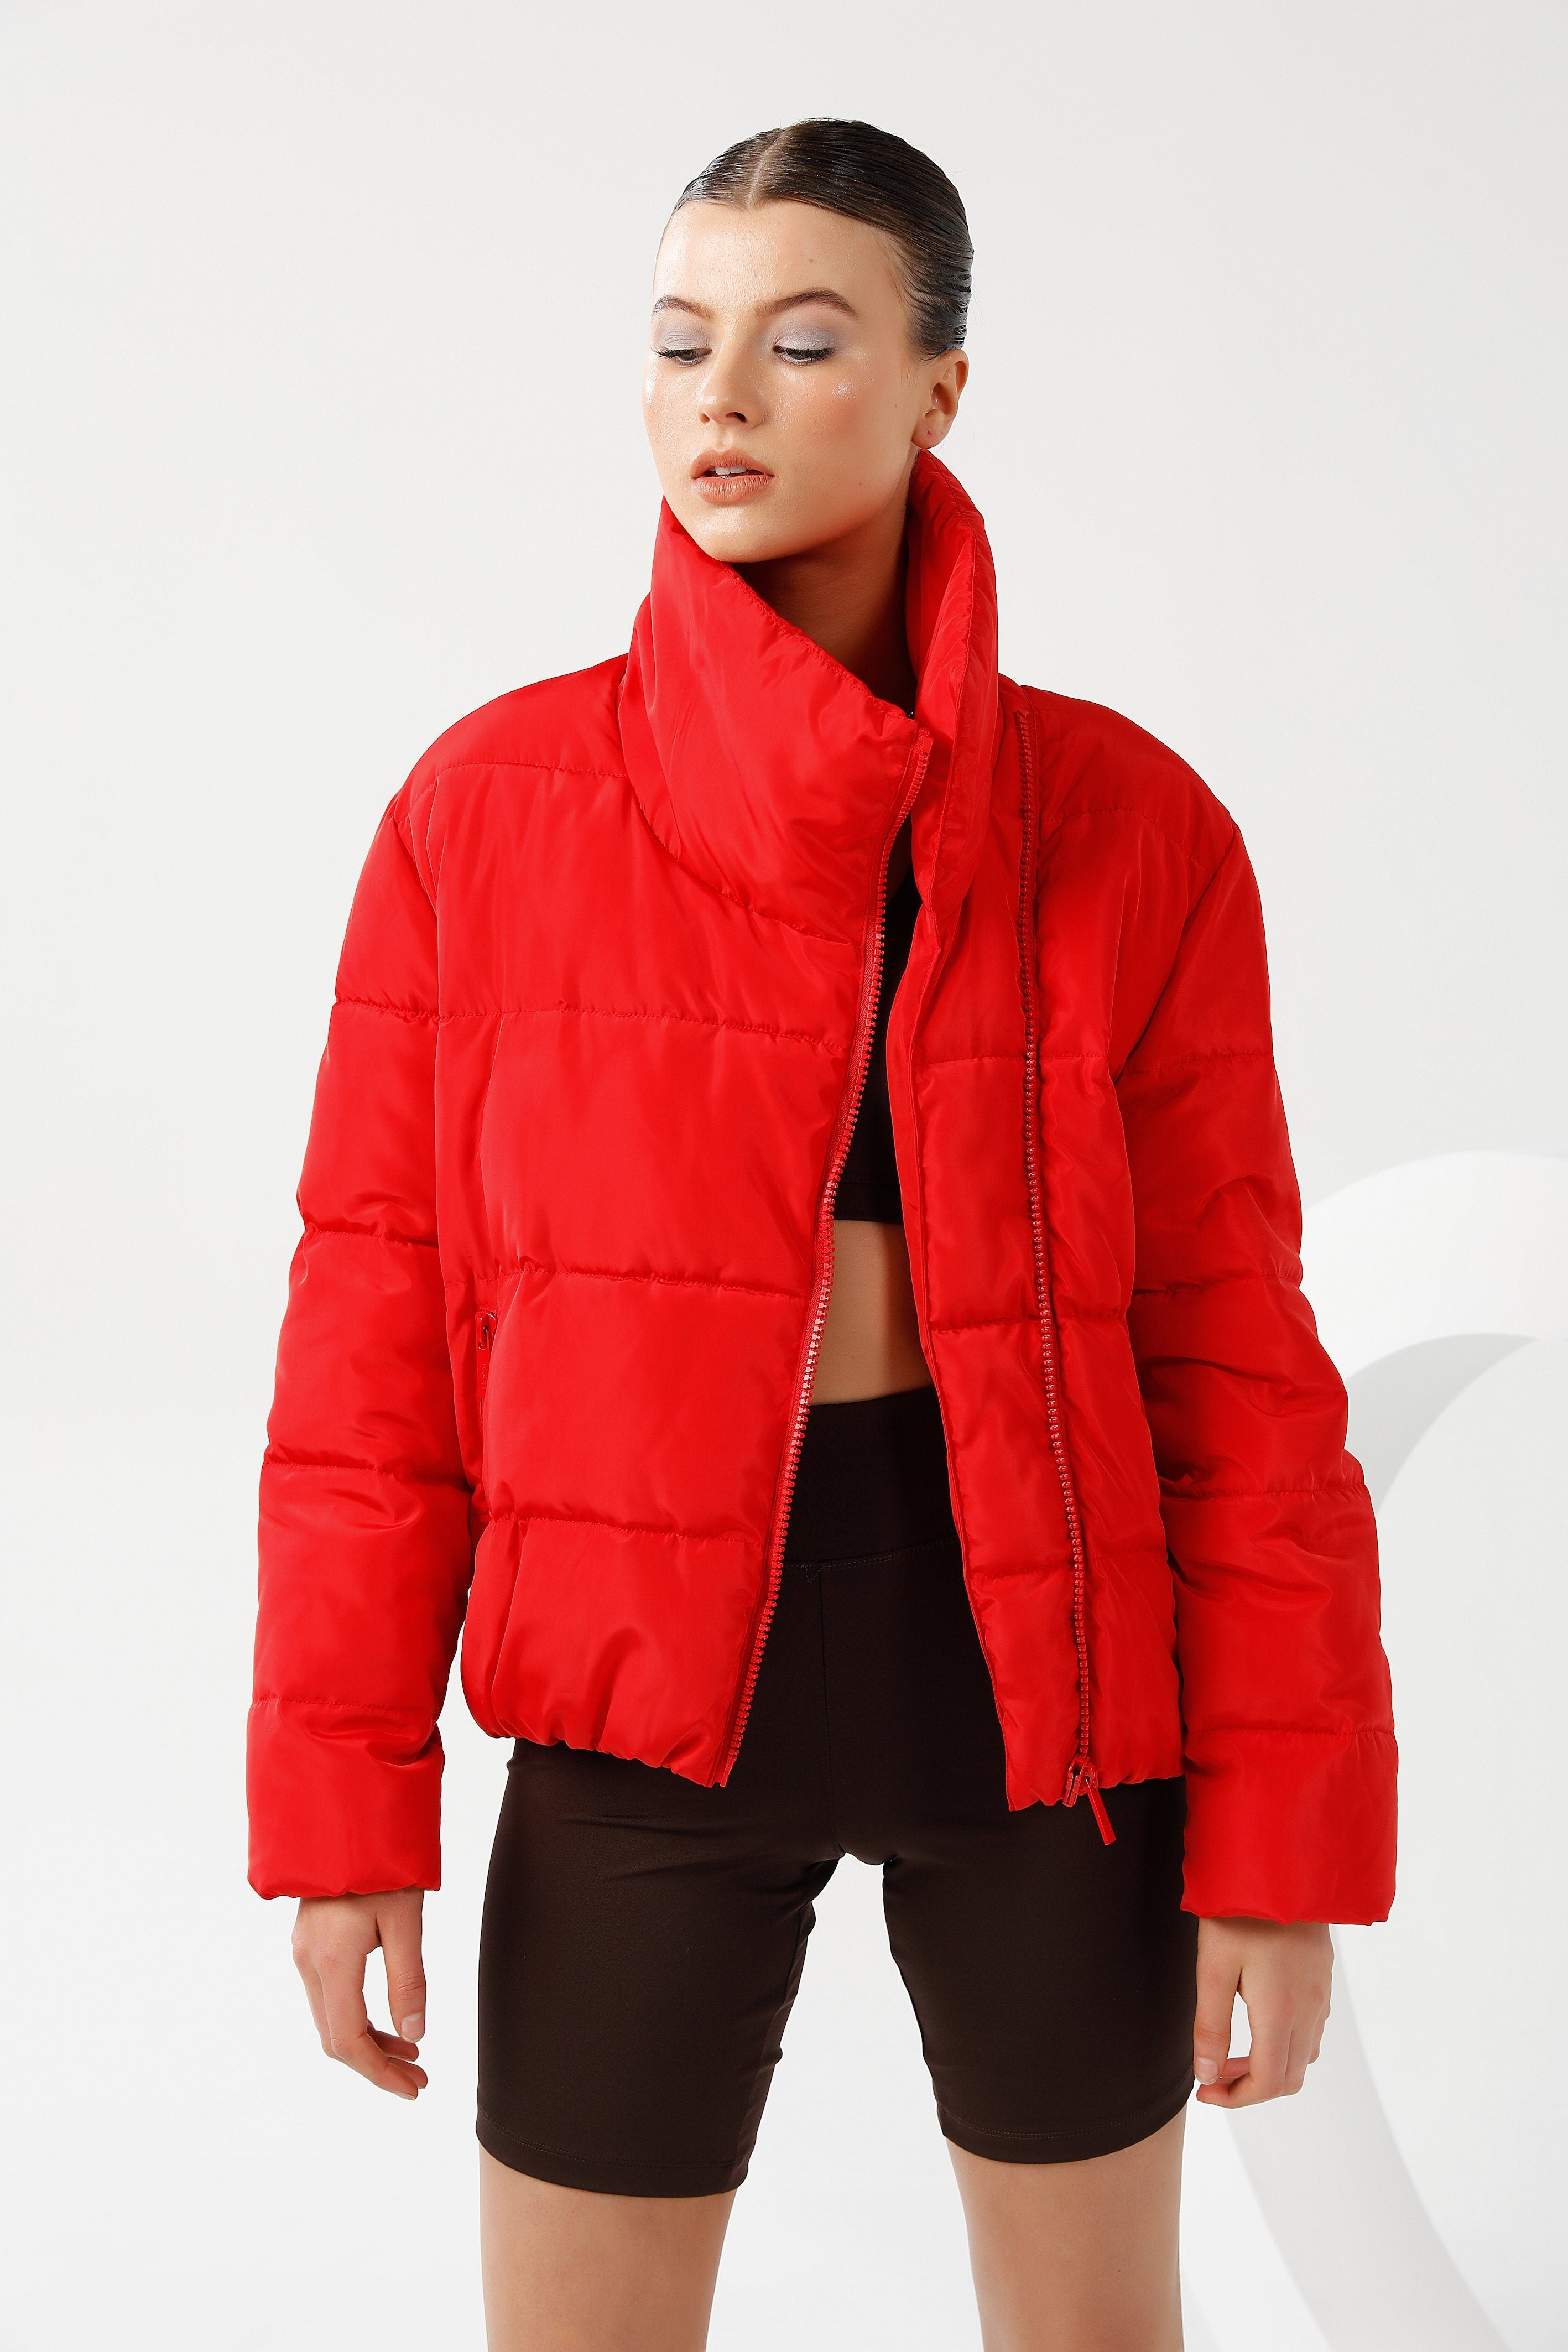 Jupiter Puffer Jacket - Red Short Jacket Toast Society